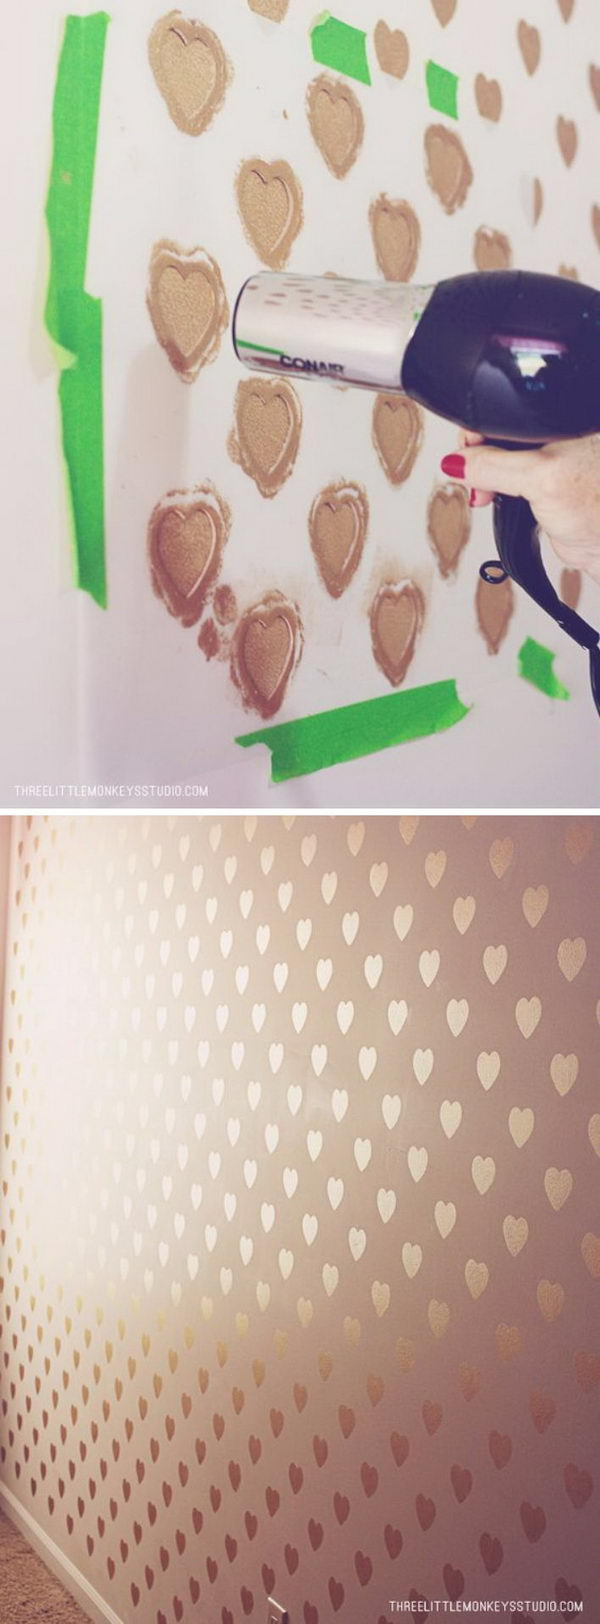 DIY Metallic Heart Feature Wall.